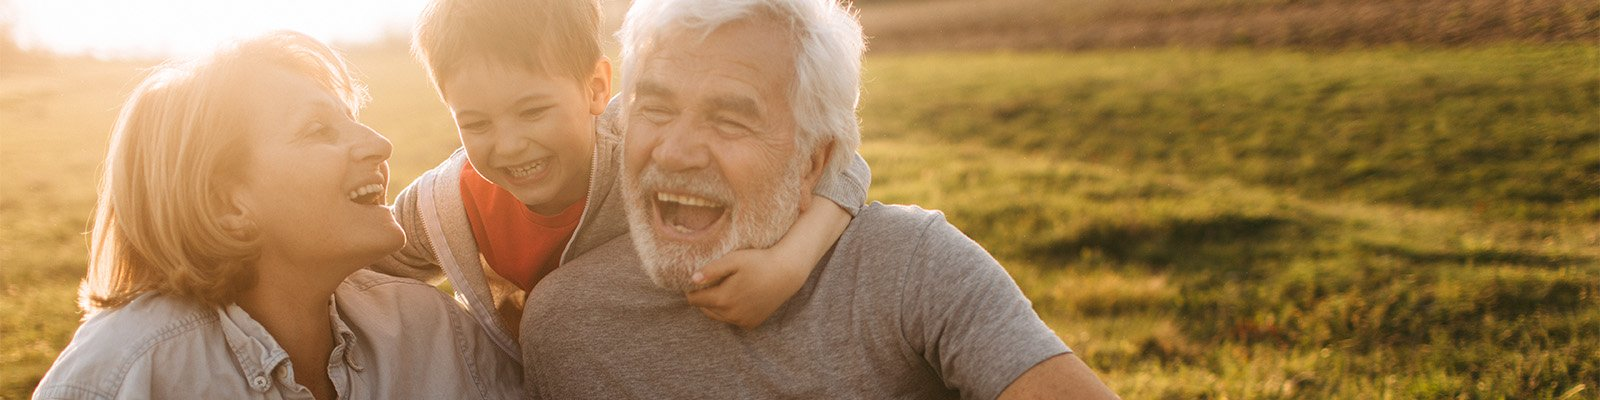 Quality Care for the whole family at Family Medcine of Tonganoxie